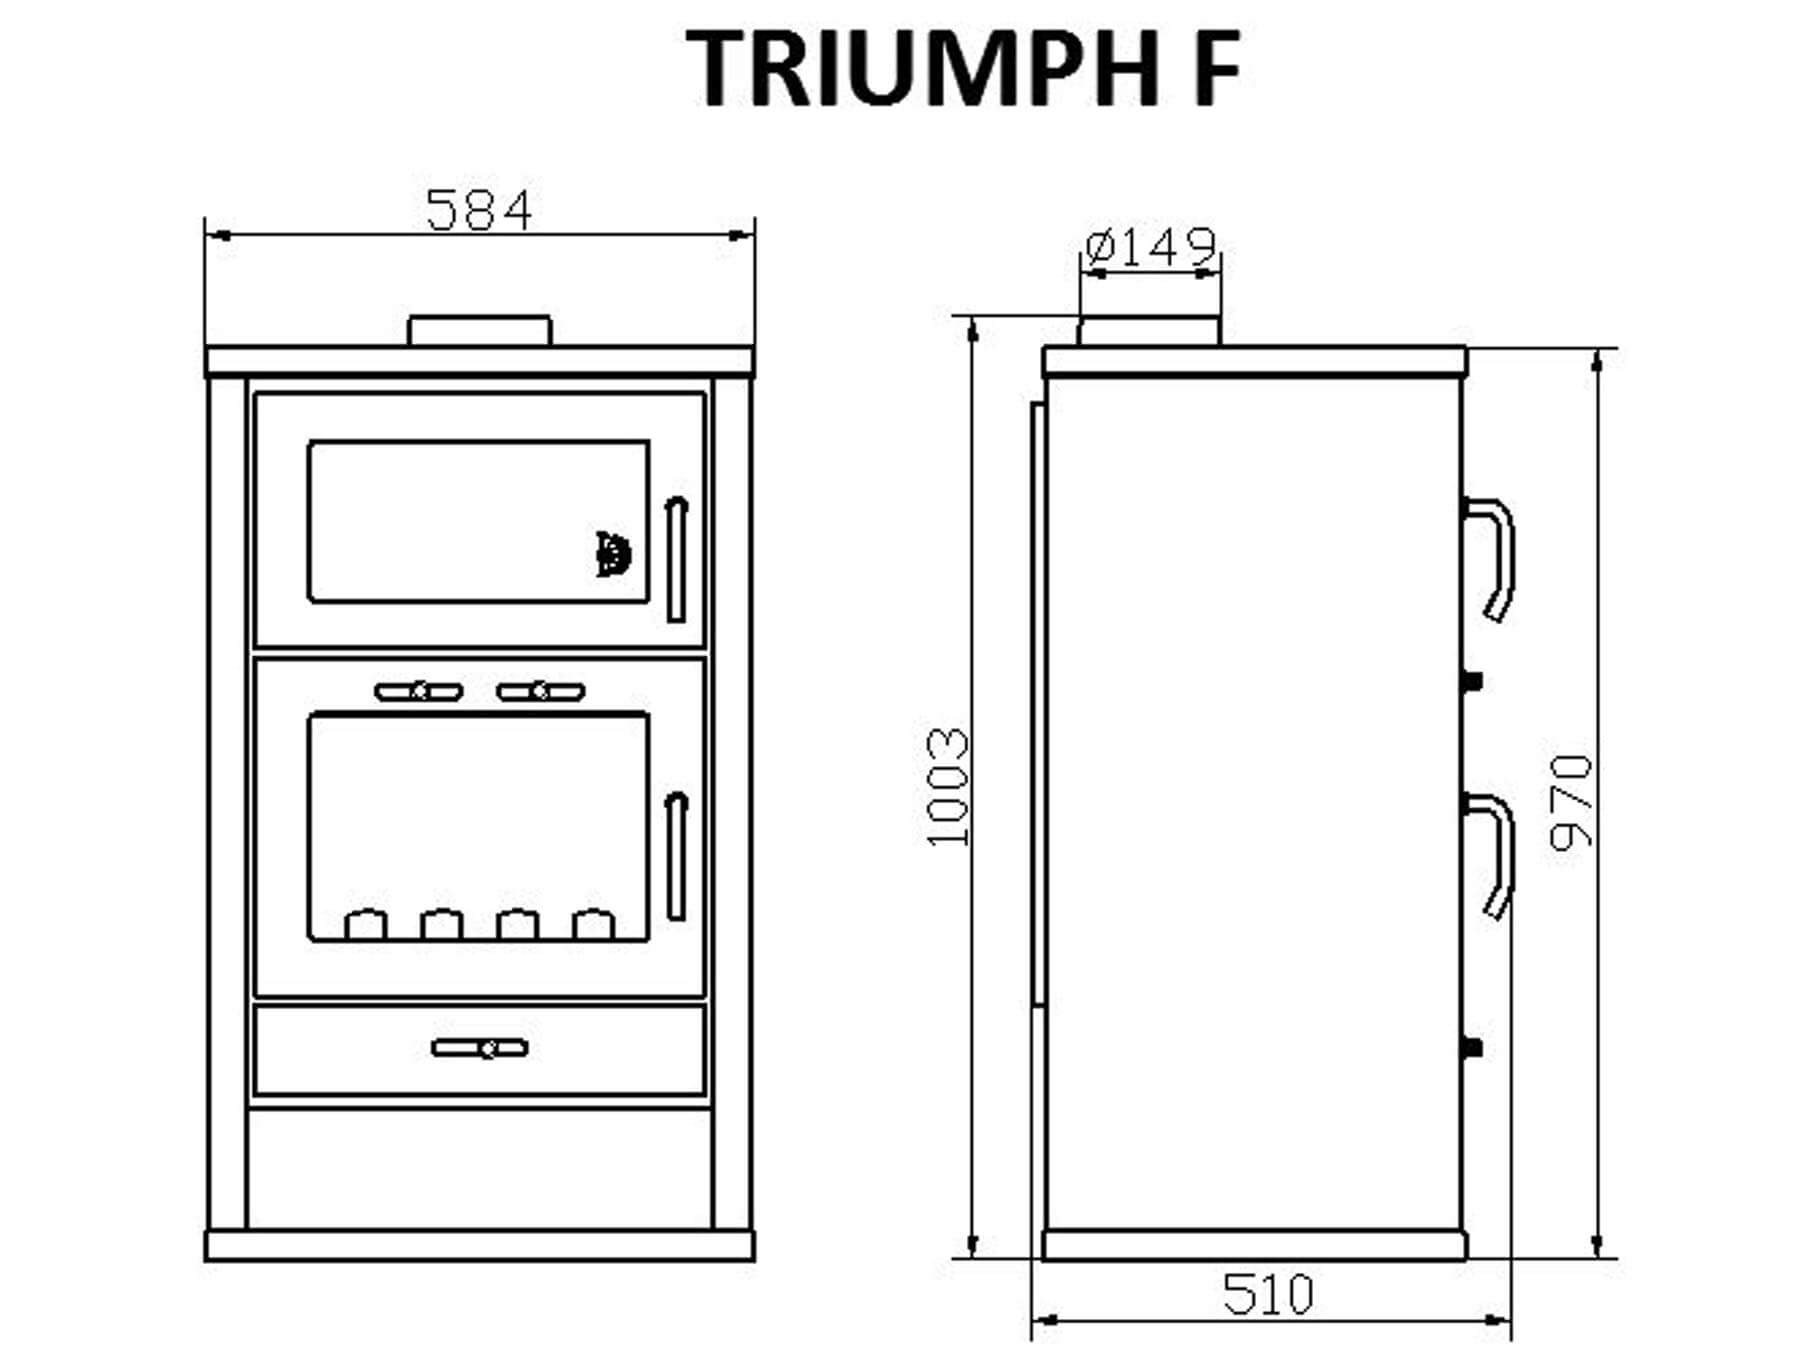 Technical-Specifications-Triumph-F-Fireplace